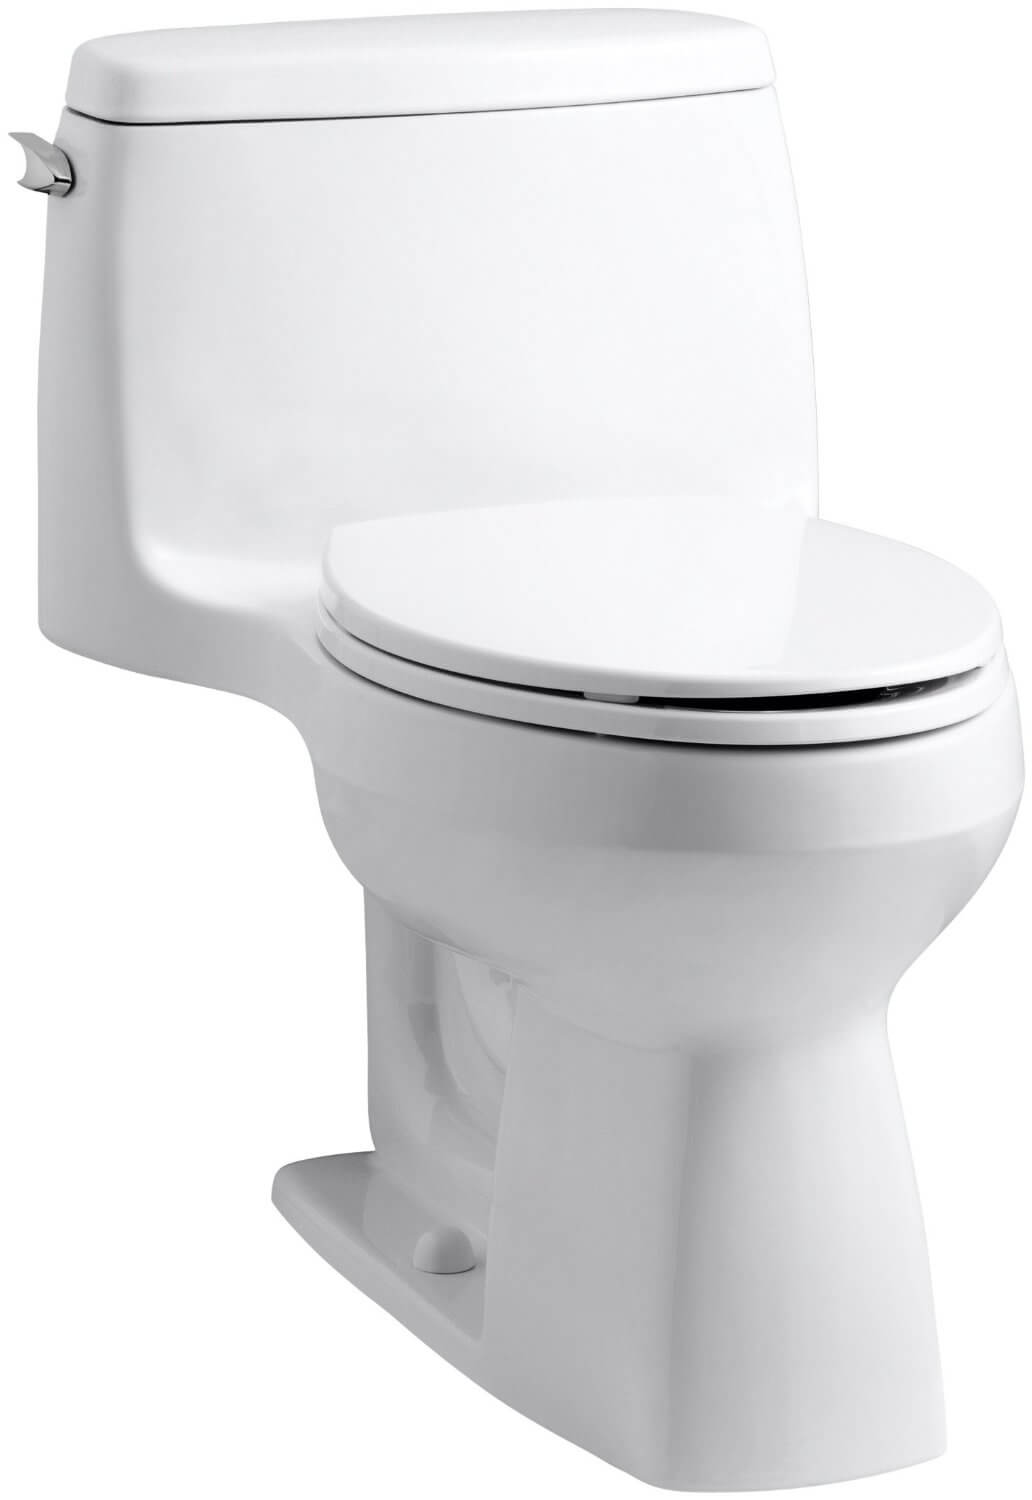 Best toilet on the market reviews - The Seat Height Designed At A Comfort Height Of 16 5 Inches So As Long As You Are Not Kobe Bryant You Can Sit Comfortably On It Like A King On His